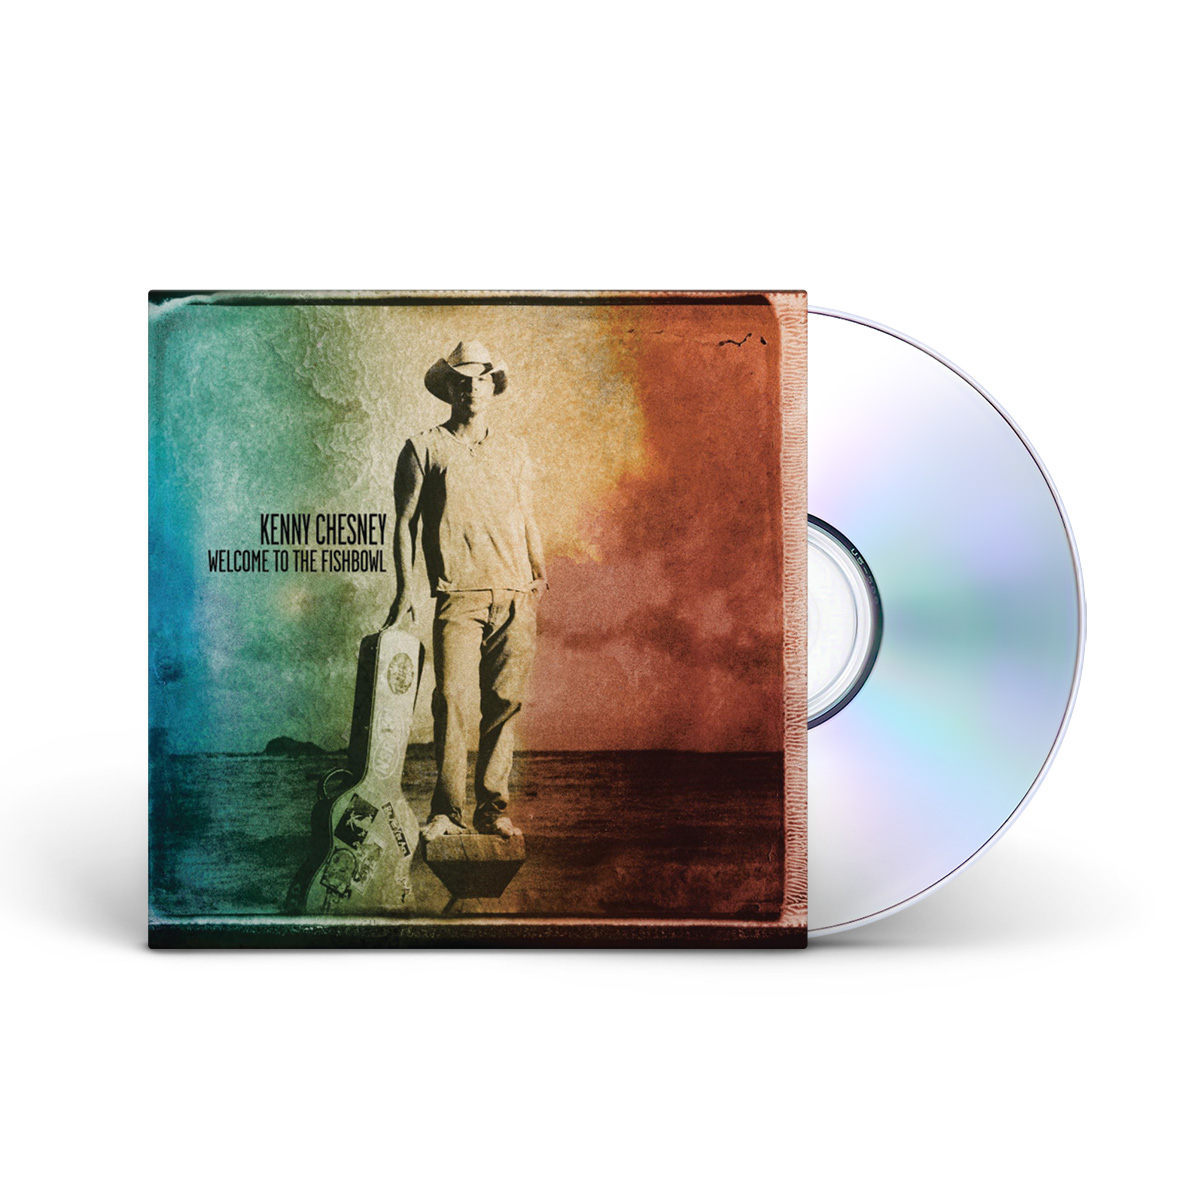 Kenny Chesney: Welcome To The Fishbowl CD